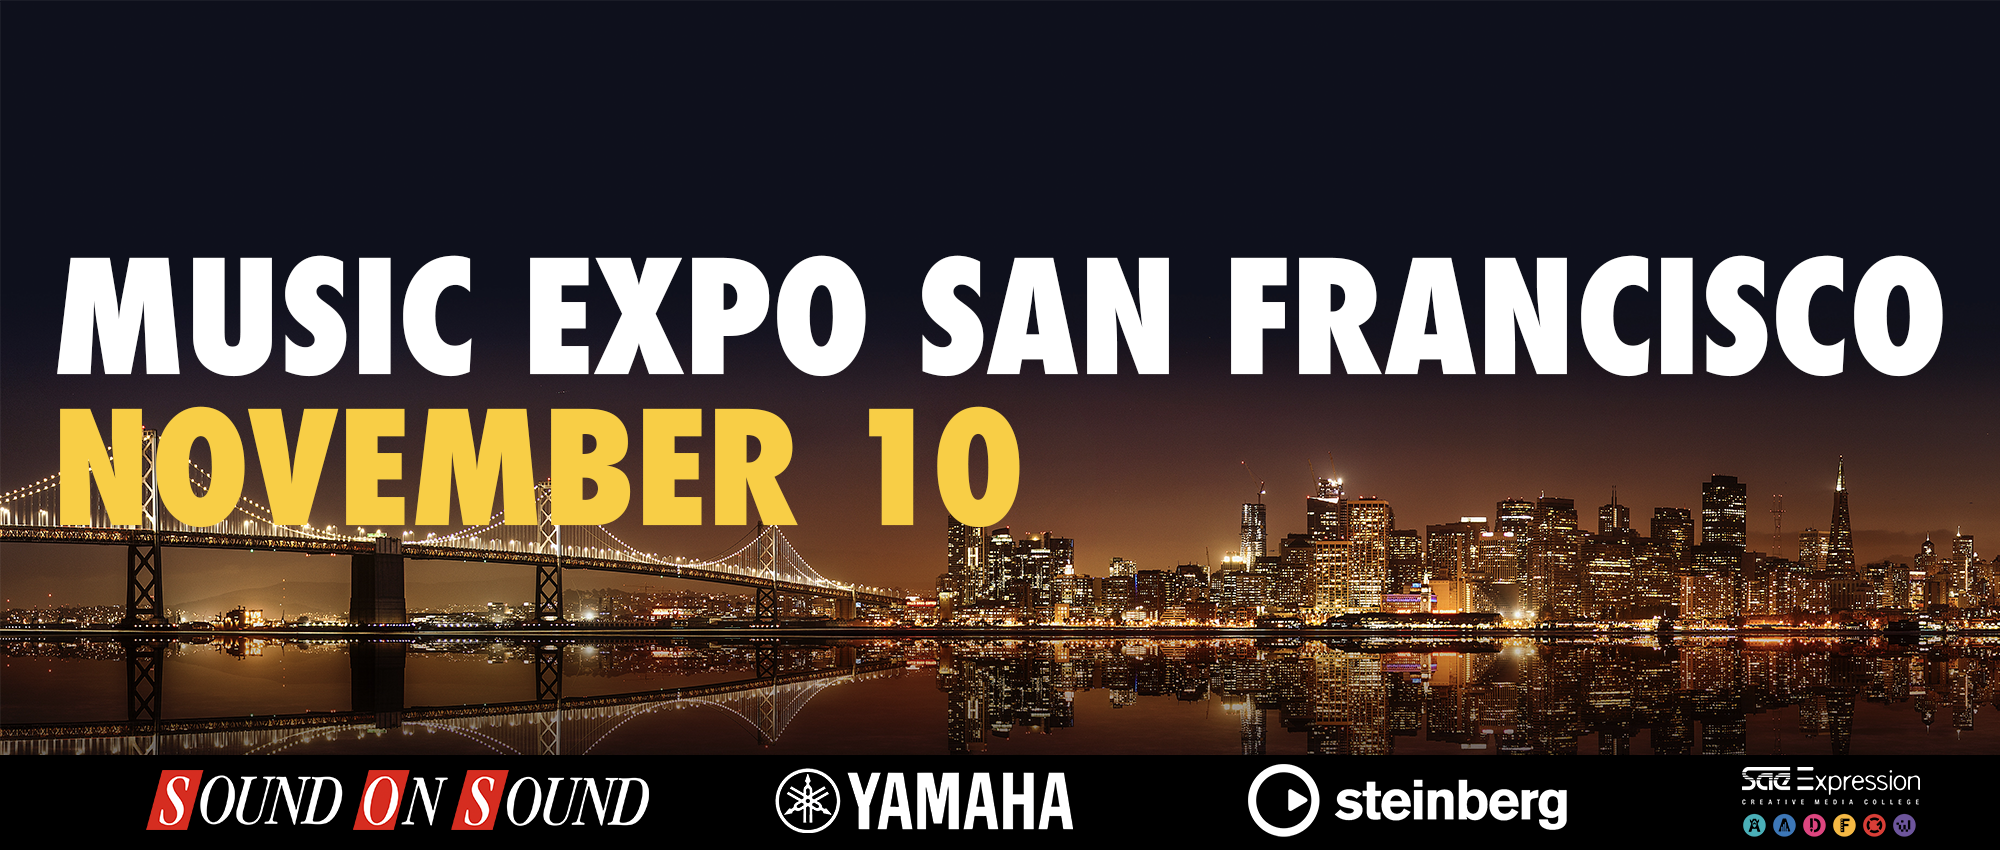 music-expo-san-francisco-2018-november-10-banner-with-sponsors.png